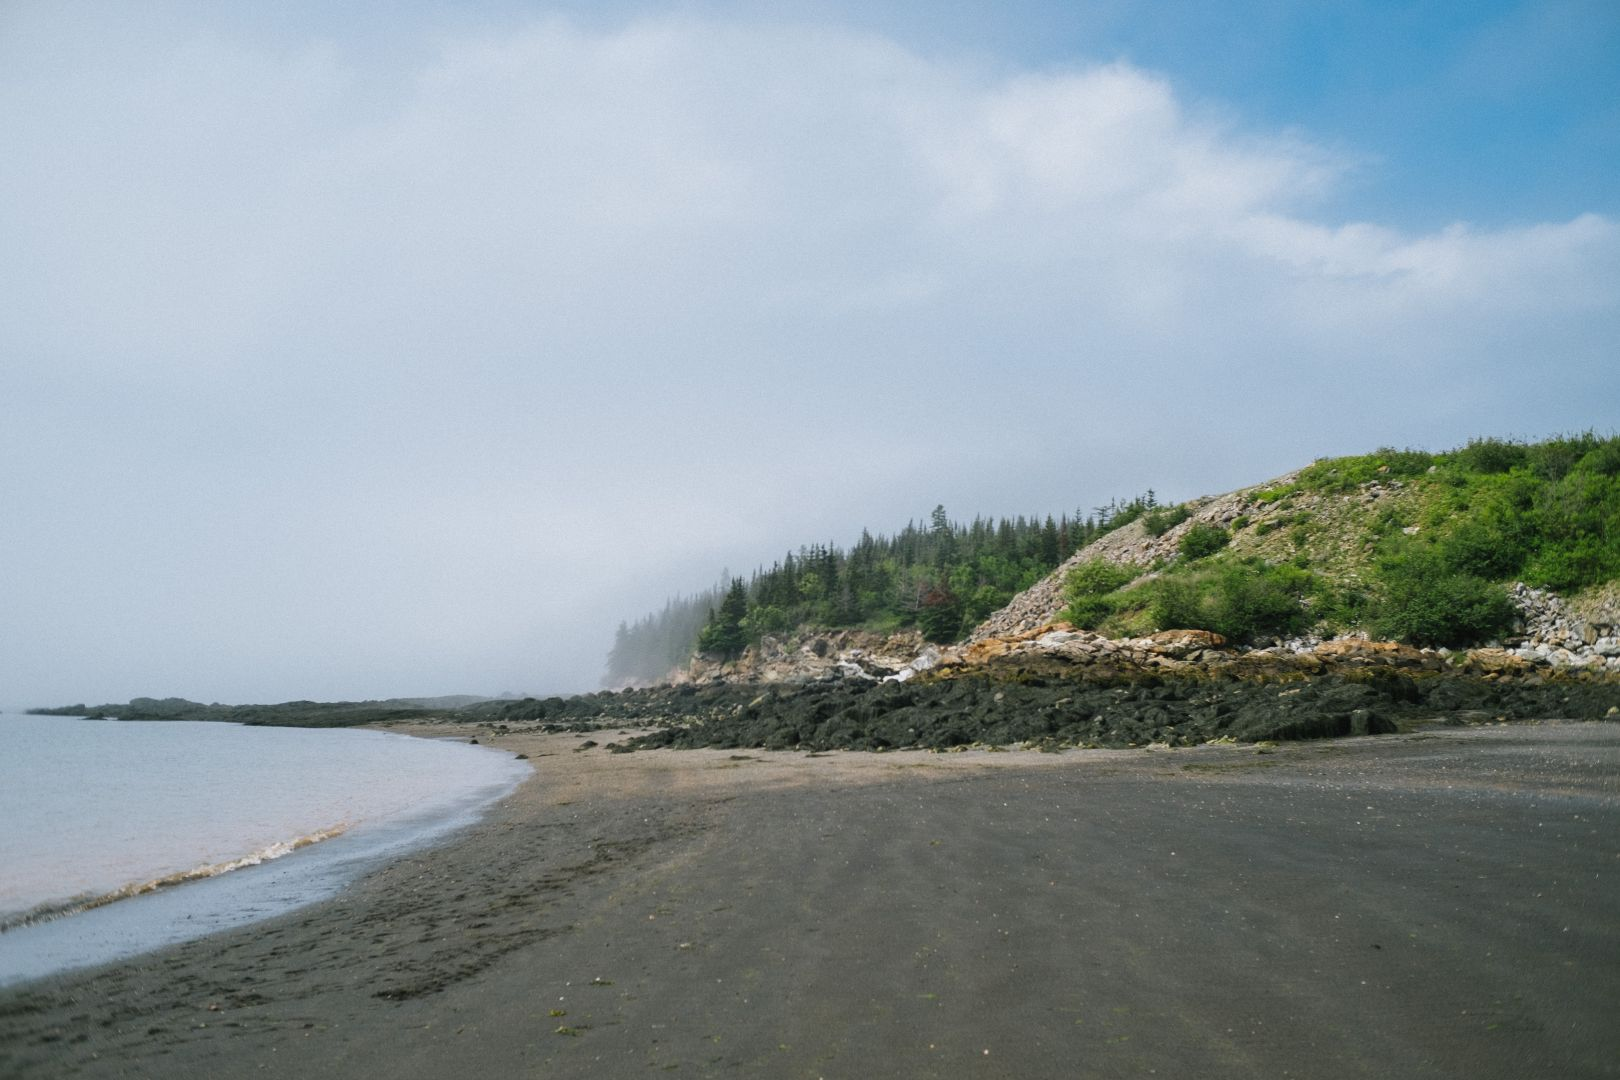 A photo depicting Black Beach in Saint John